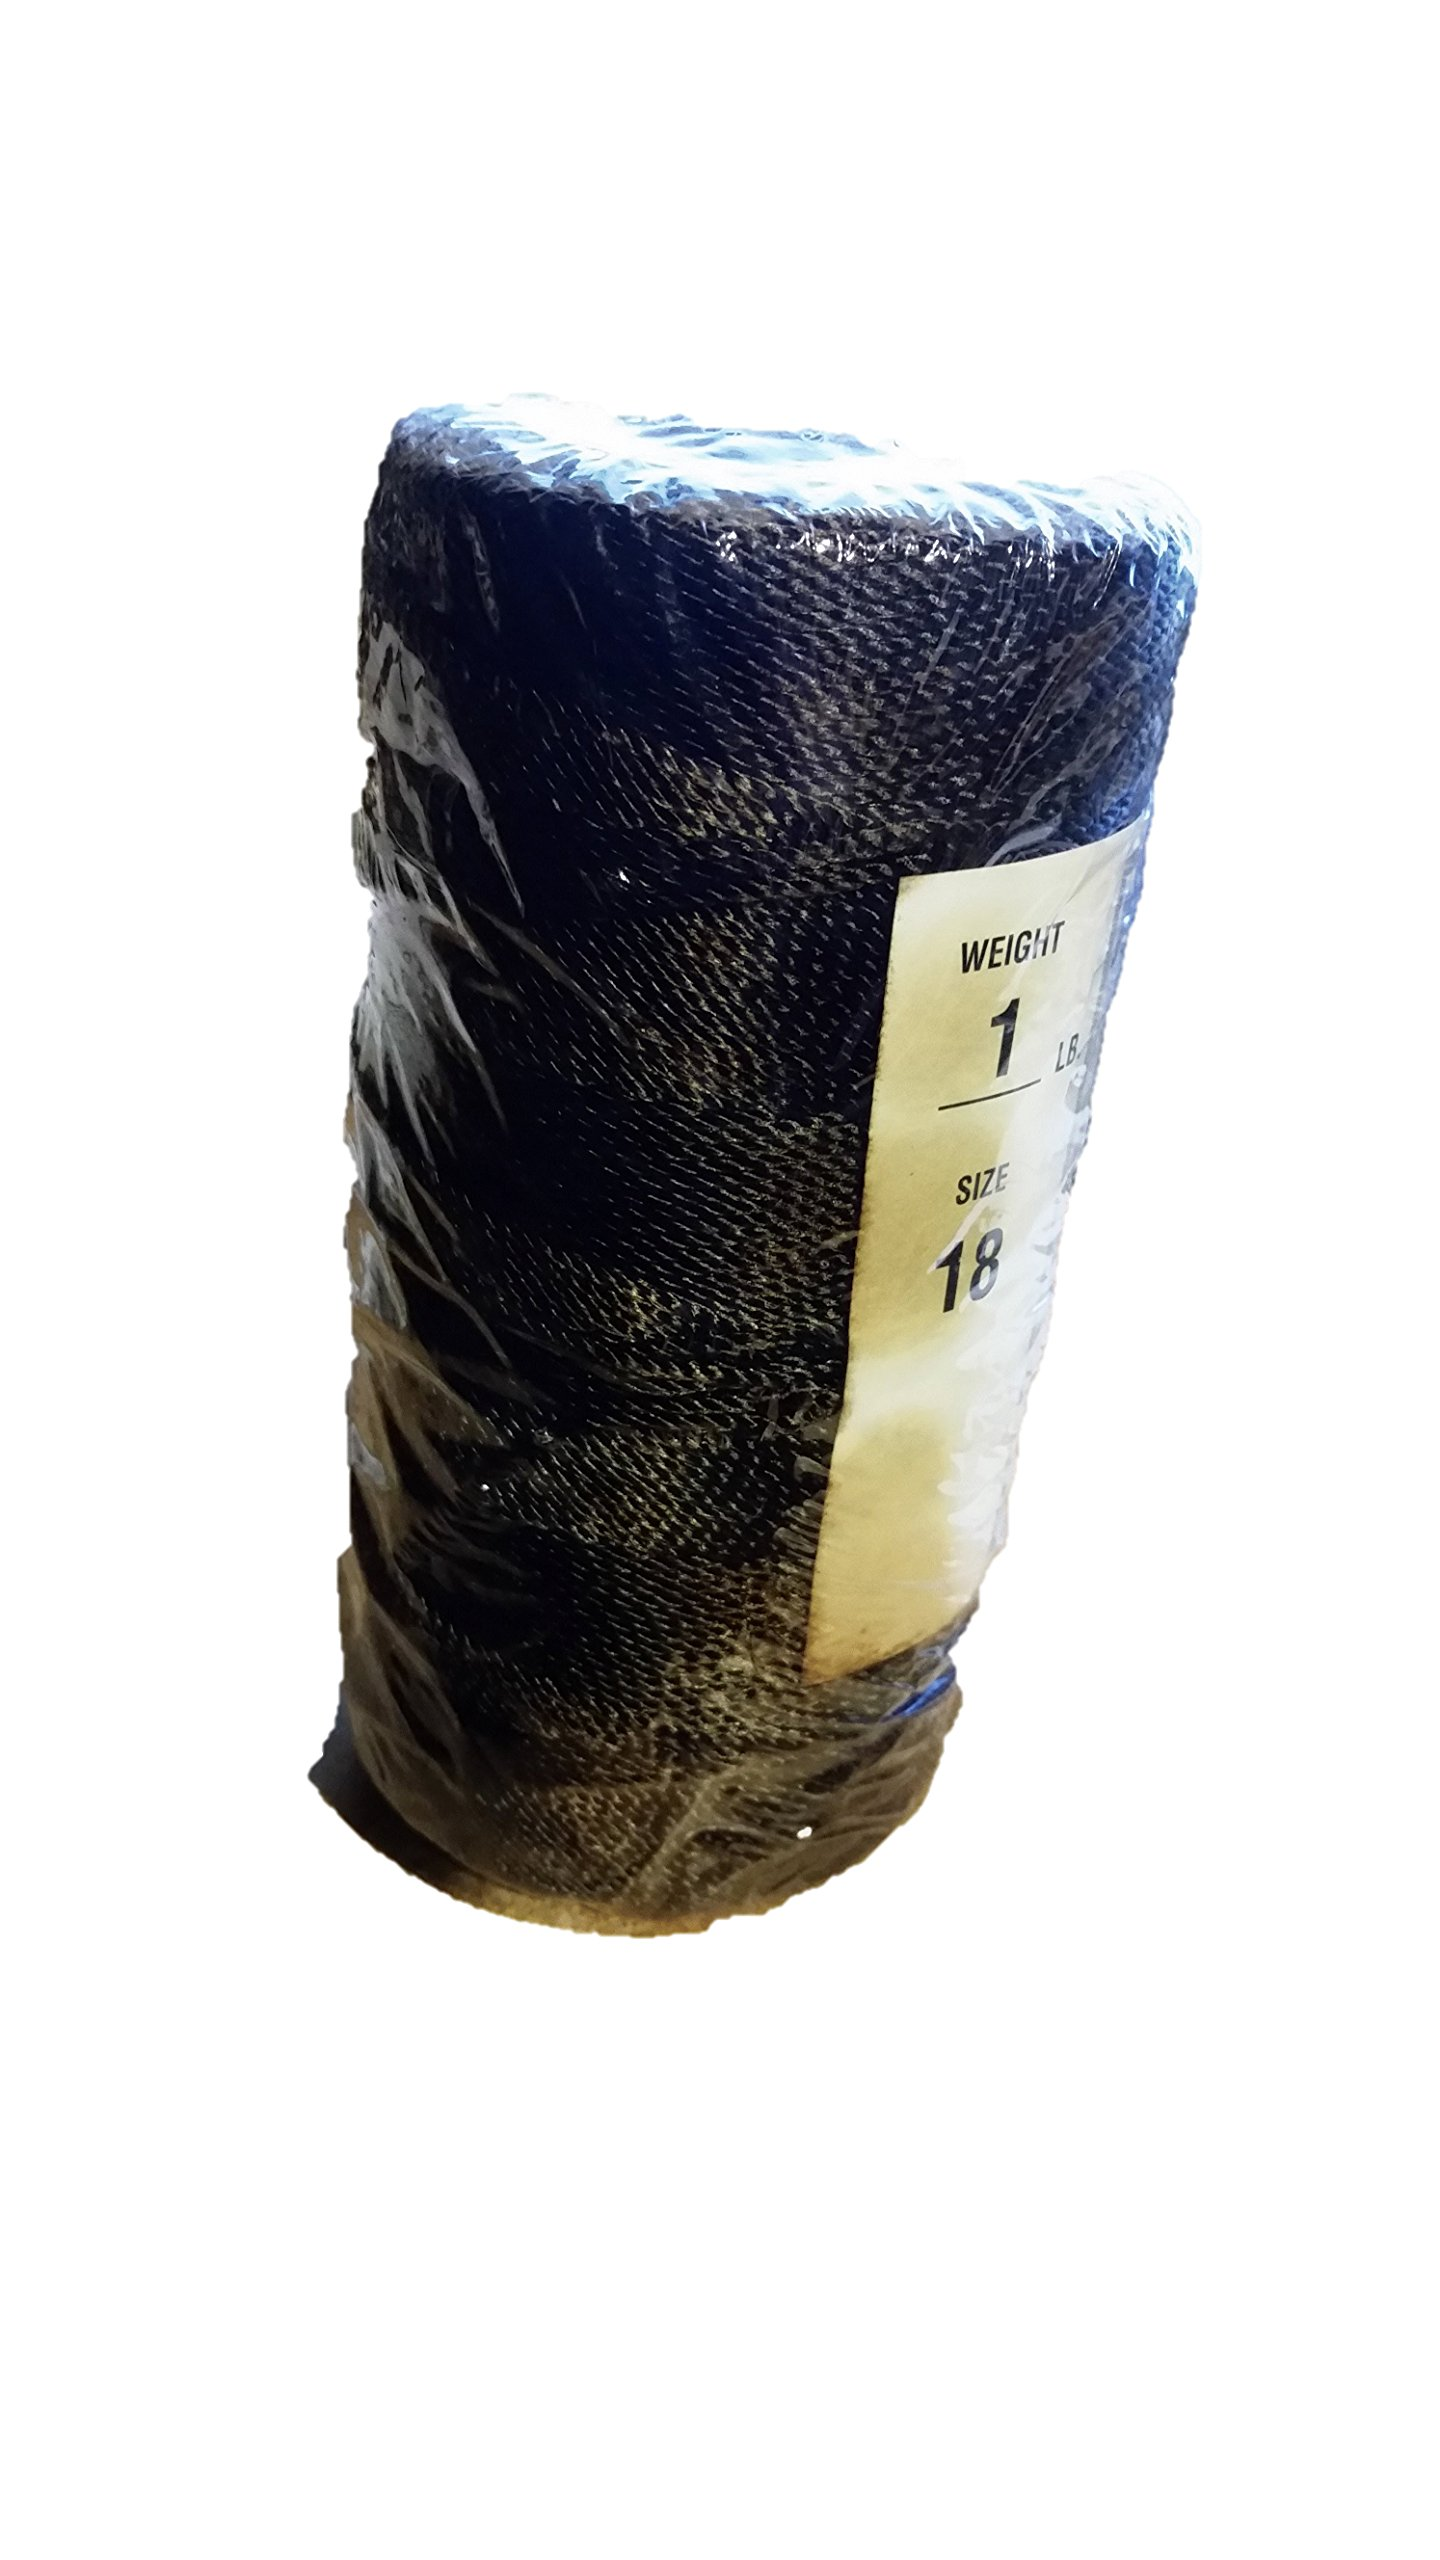 Batting Cage Repair Twine Lacing Cord 1000ft Tarred Weather Resistant by RF Ederer